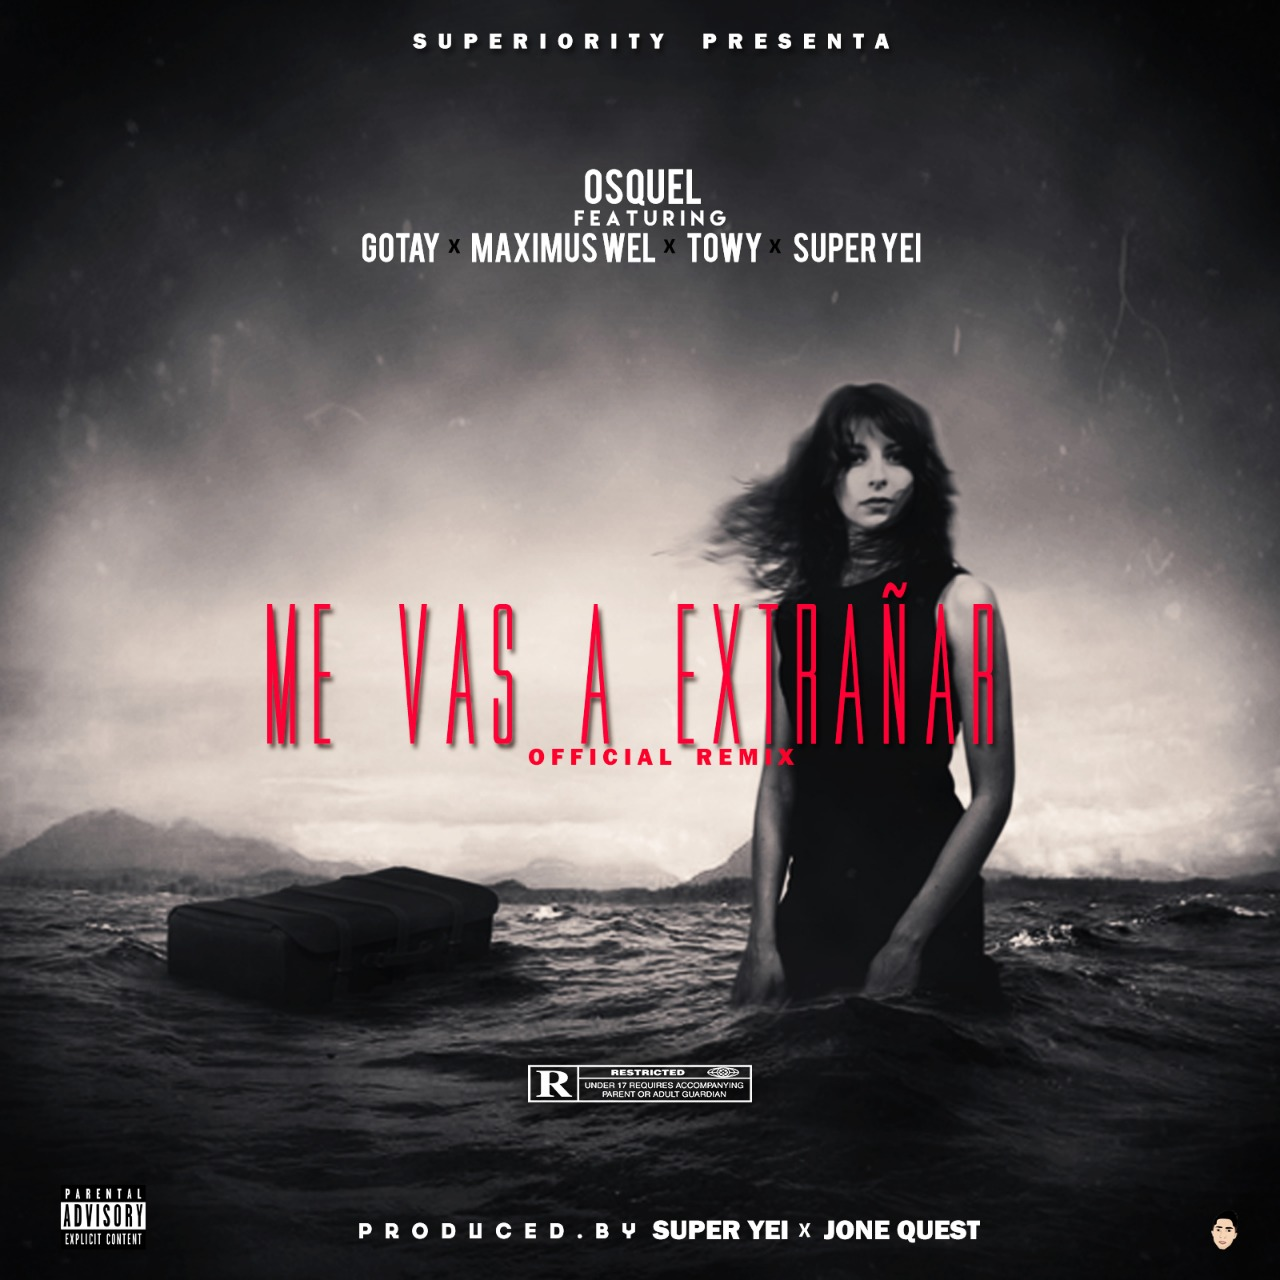 extra - Osquel Ft. Gotay, Towy, Maximus Wel Y Super Yei – Me Vas A Extrañar (Official Remix)